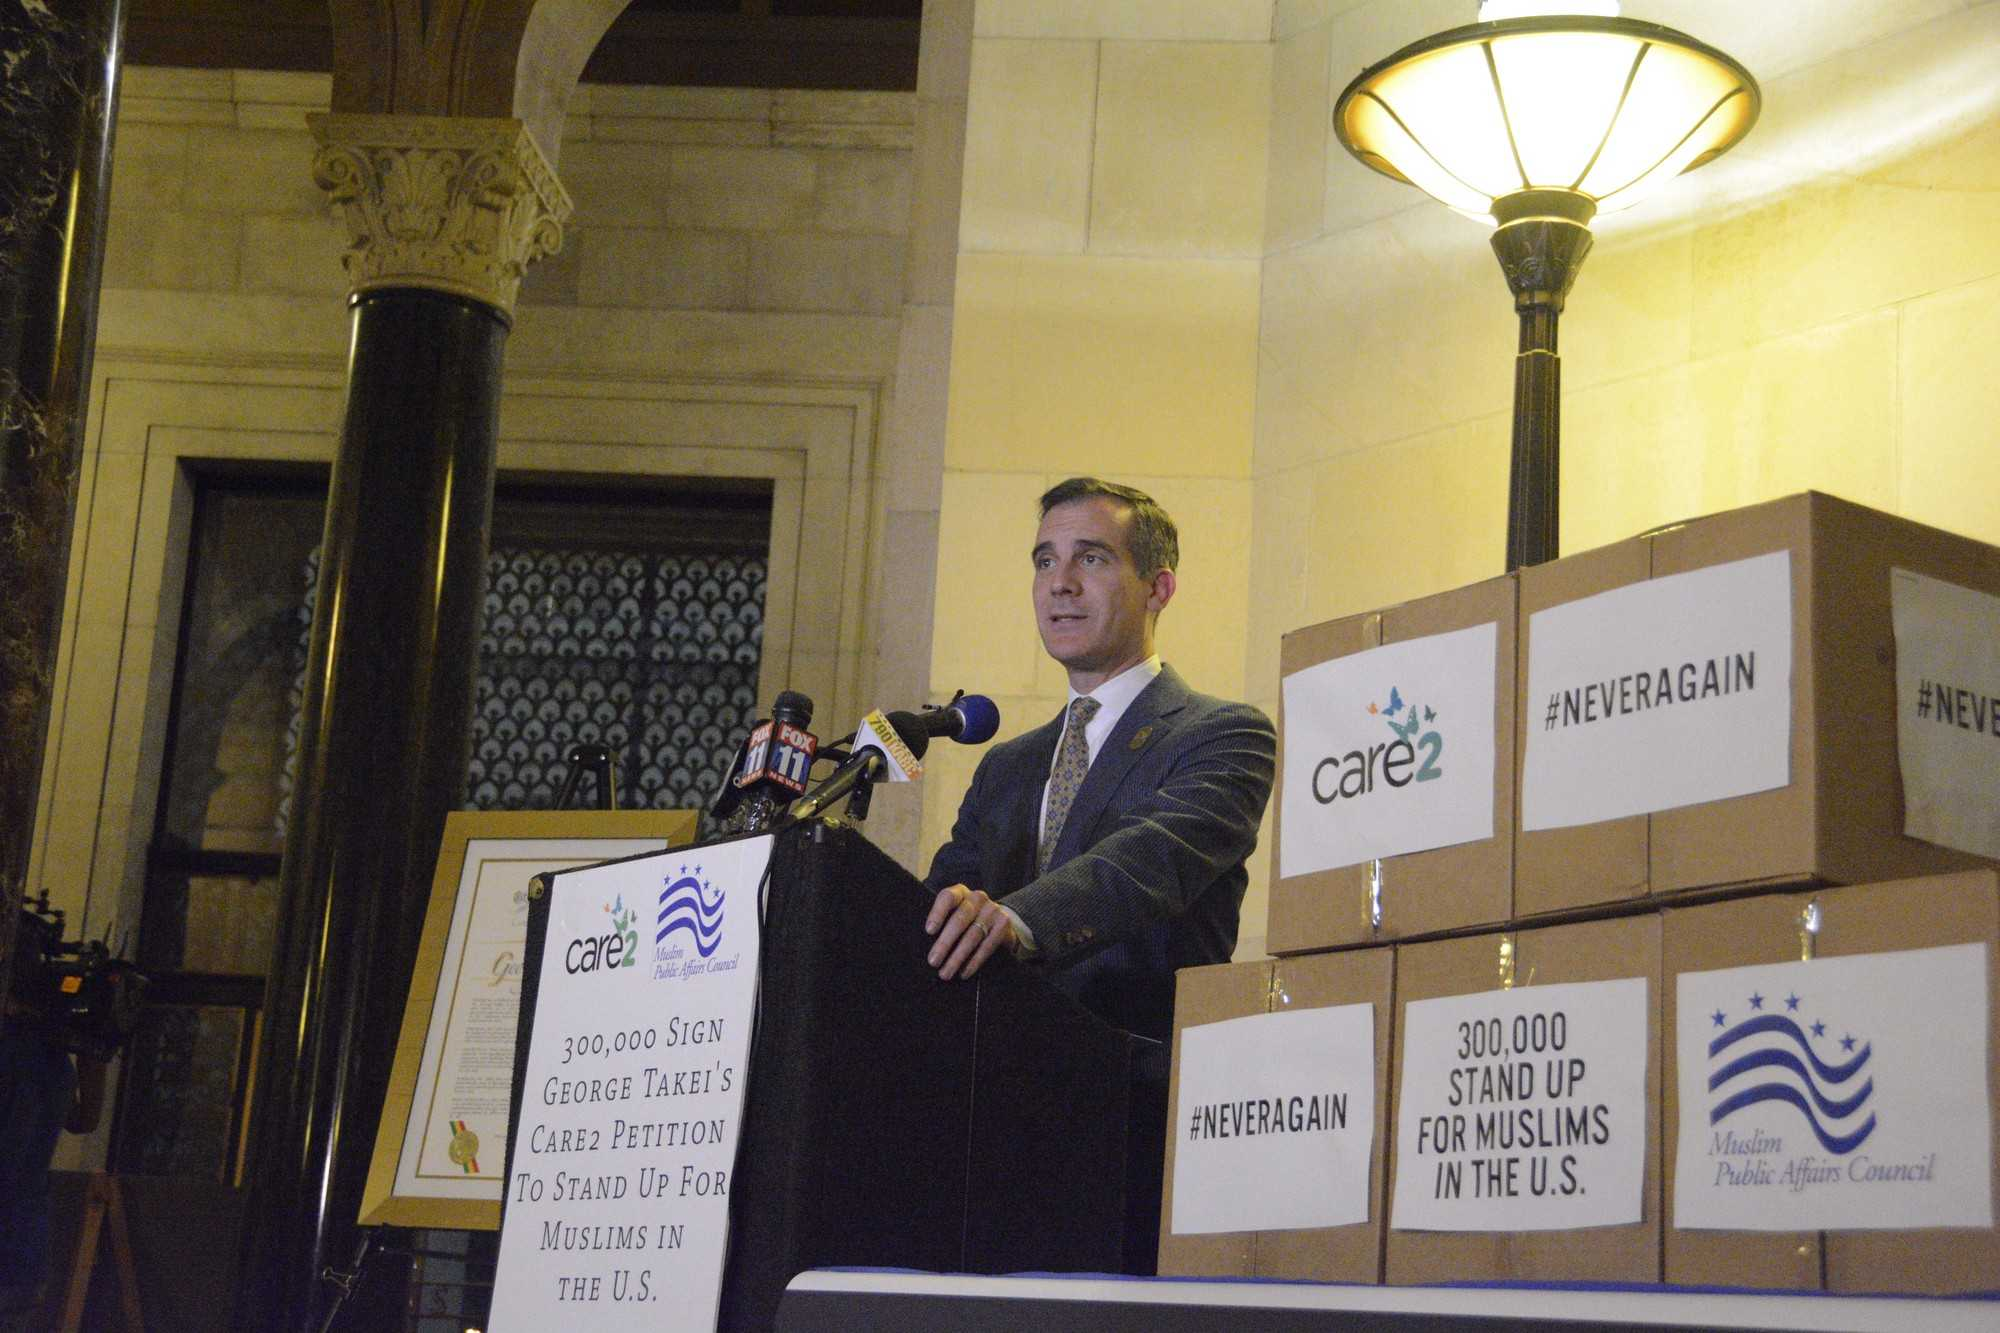 Los Angeles Mayor Eric Garcetti voiced his concern regarding the safety of the Muslim community and supports George Takei's petition in efforts to protect the community. Photo credit: Nathalie Ramirez